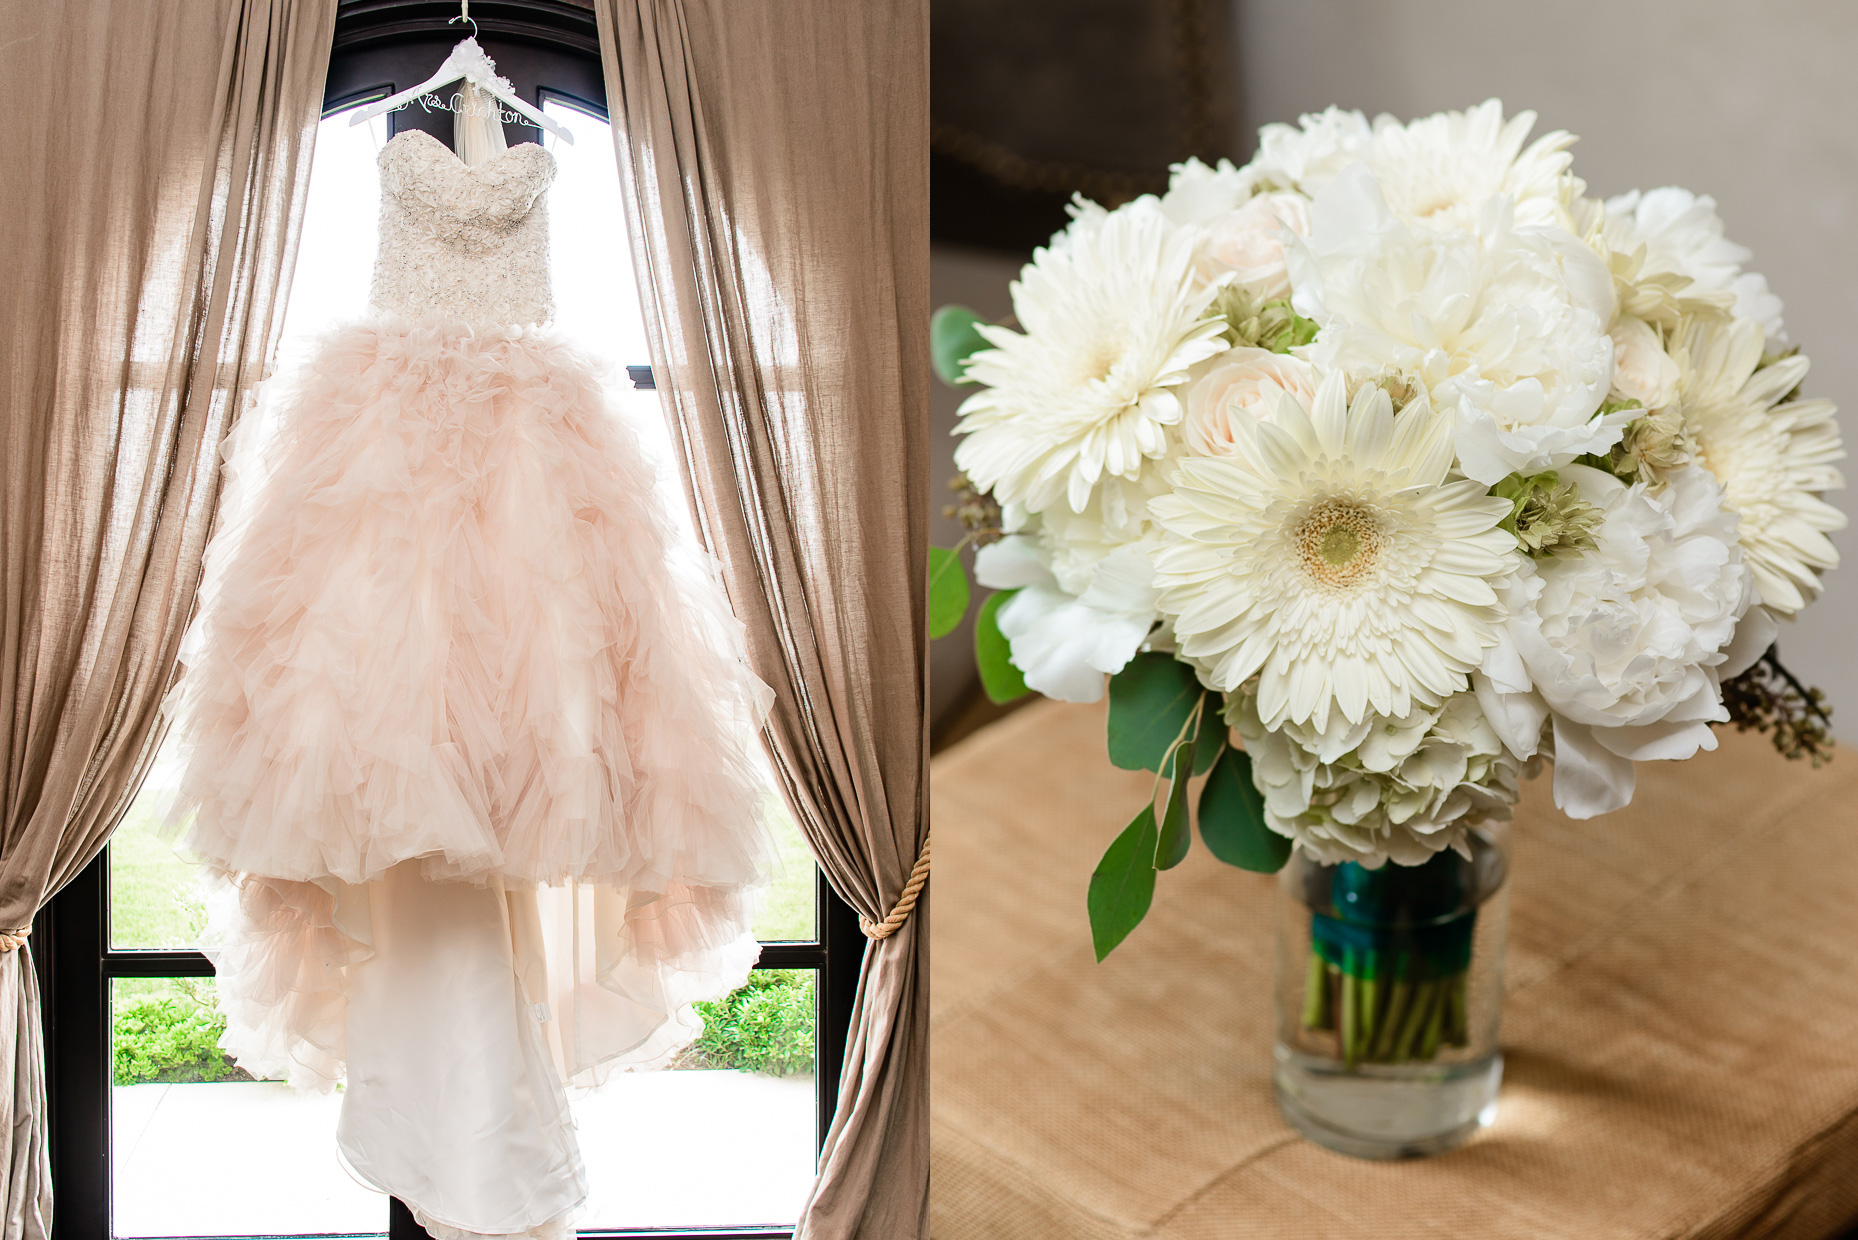 austin-wedding-photographers-details-dress-bouquet-ma-masion-dripping